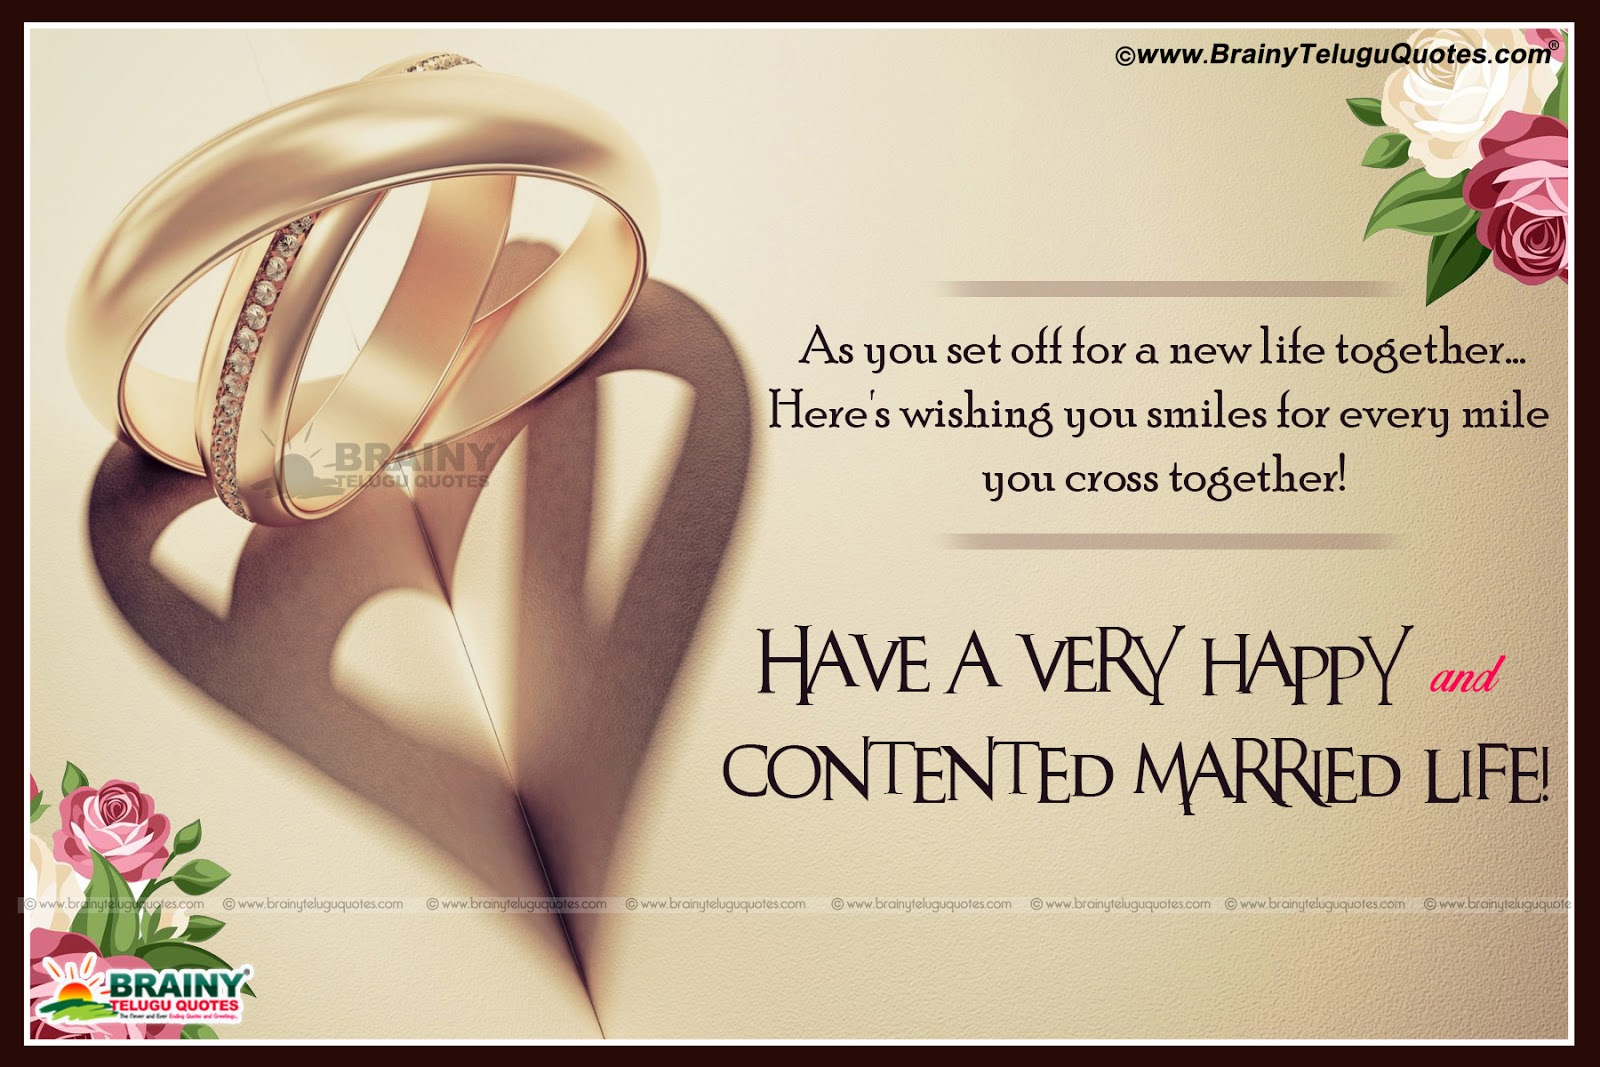 Best Marriage Day Wishes And Quotes Greeting Cards Images